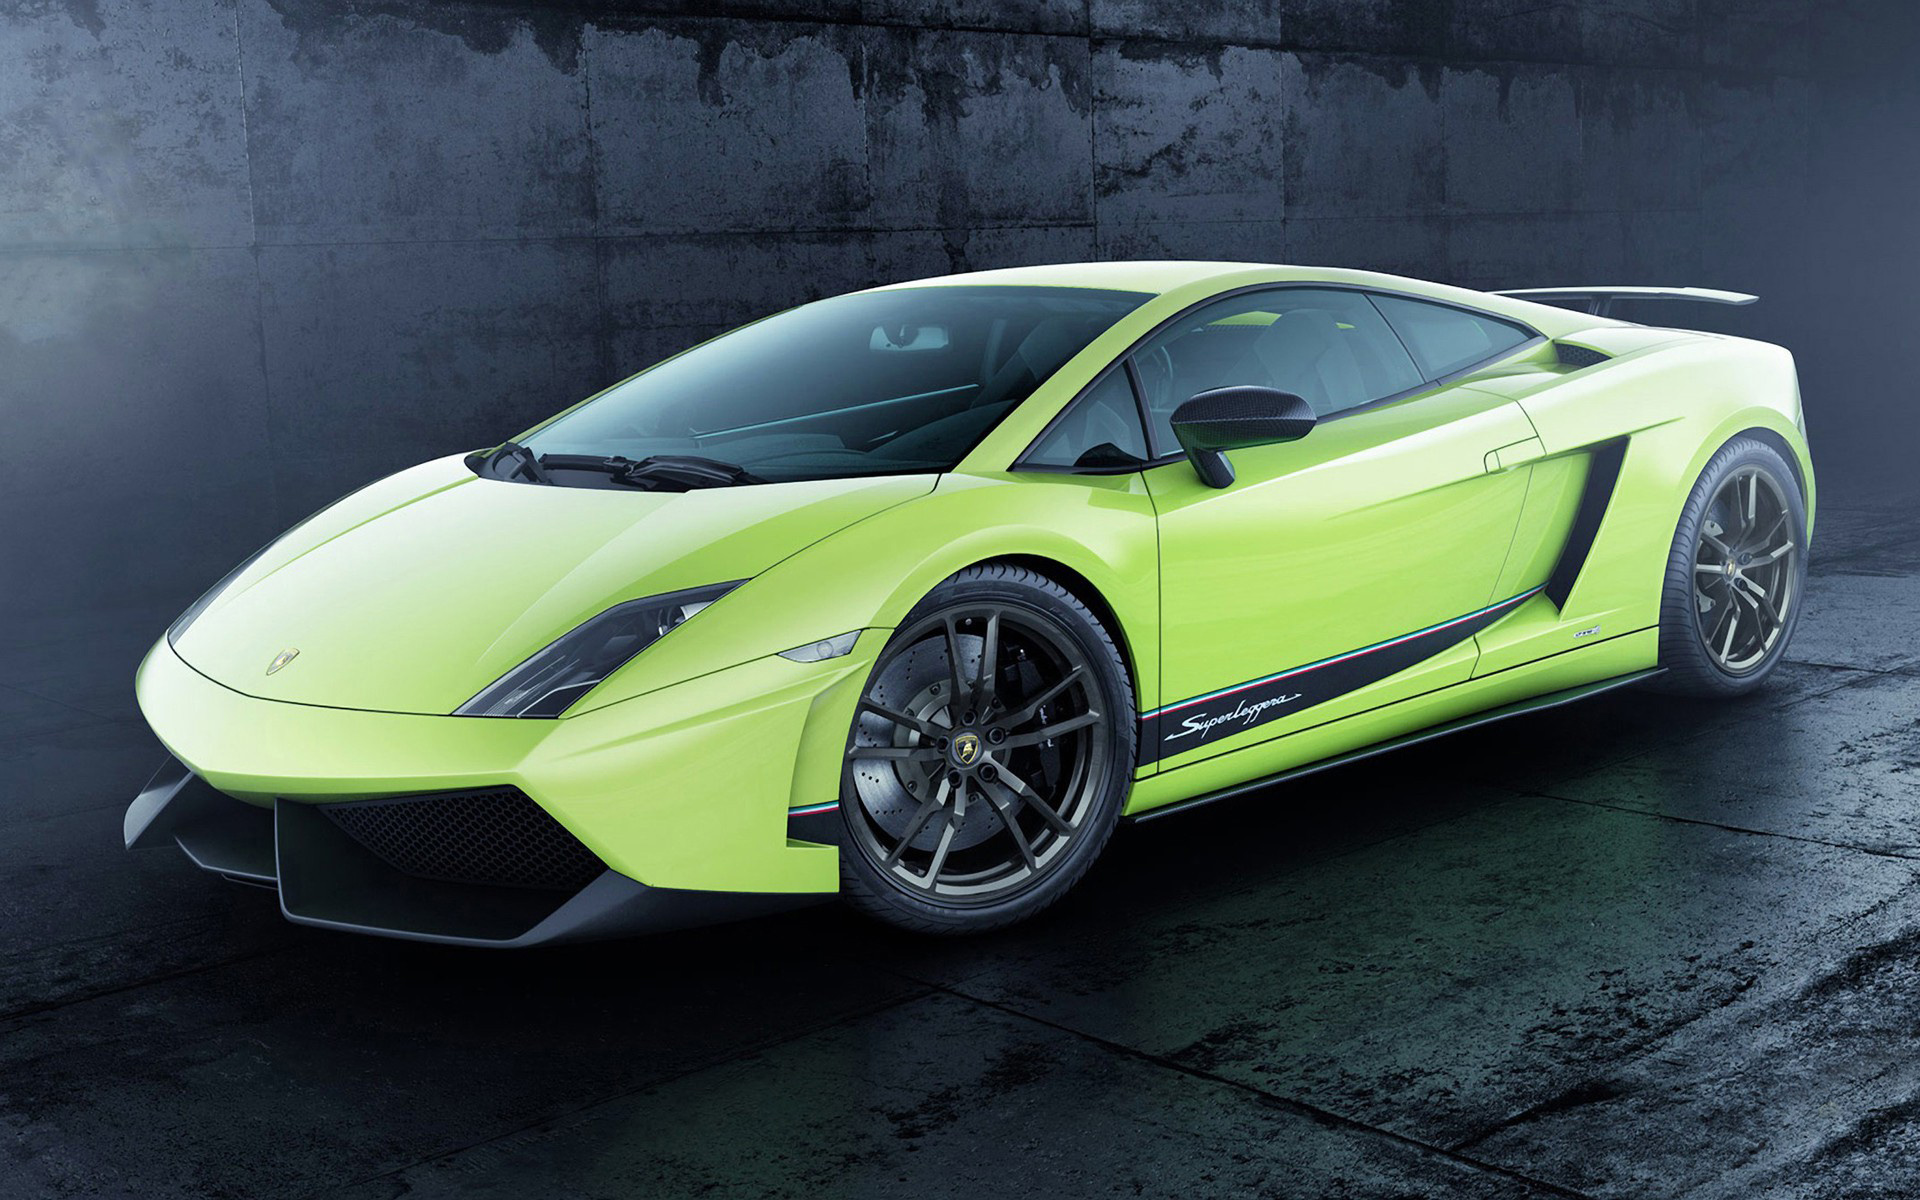 2013_lamborghini_gallardo_lp_570_4_superleggera-wide (1)